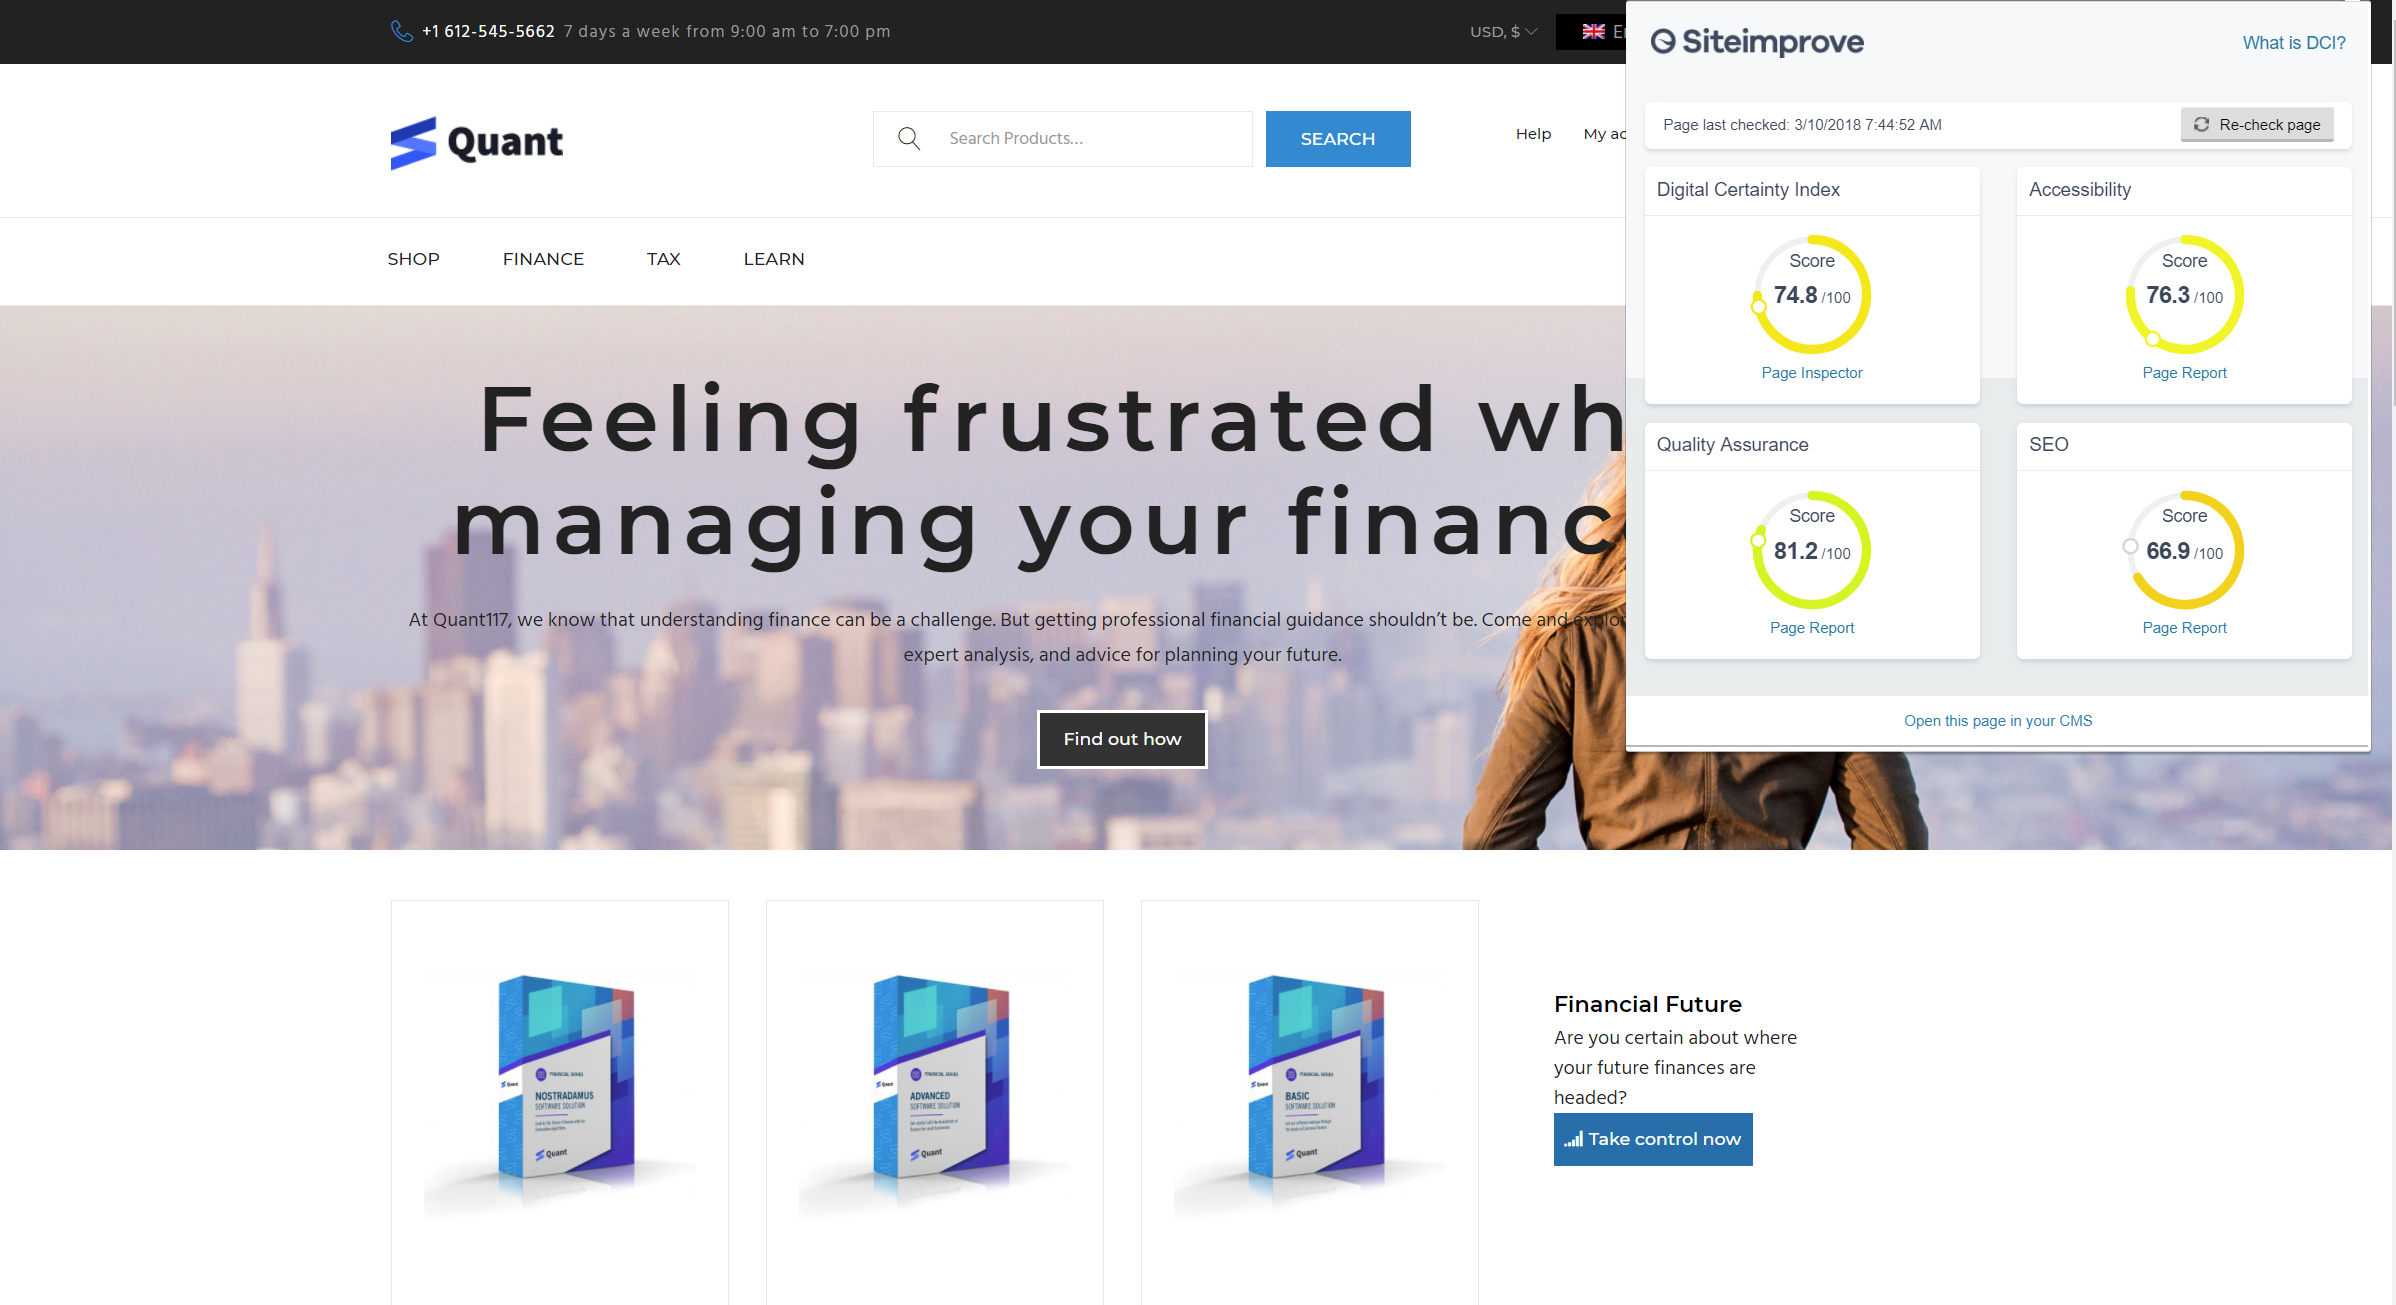 screenshot-of-the-siteimprove-browser-extension